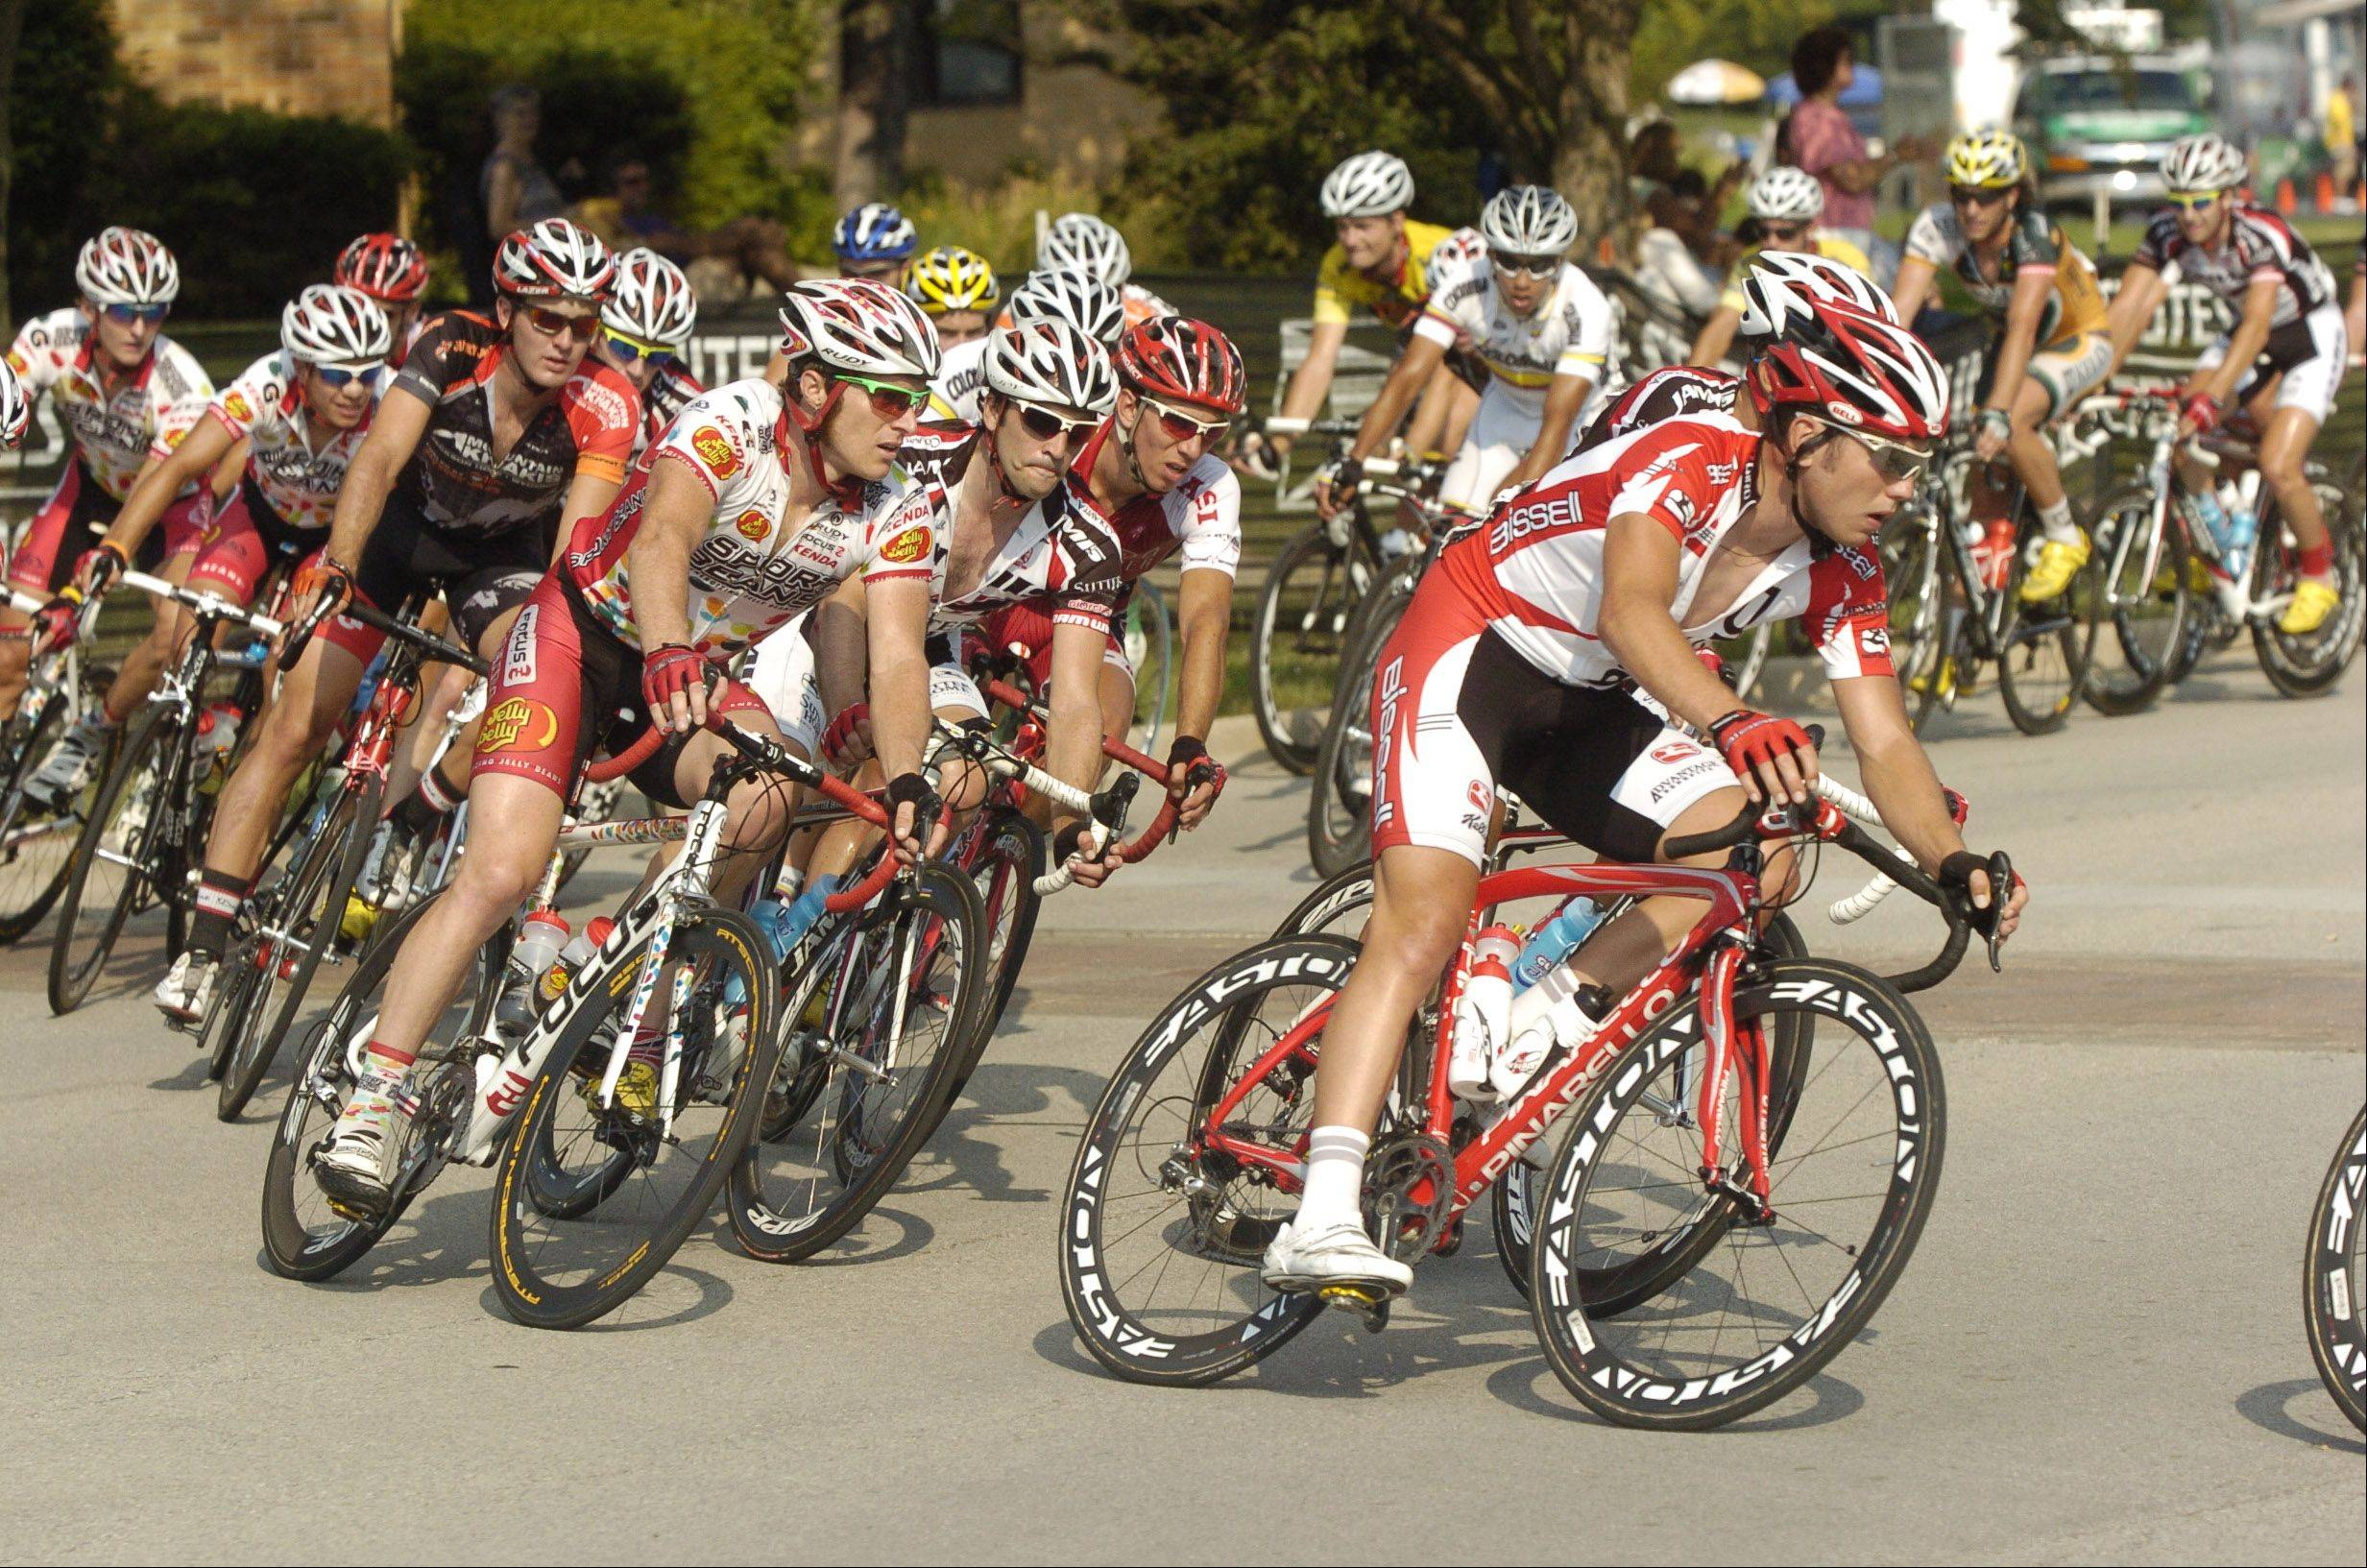 Tour of Elk Grove draws record number of pro cyclists